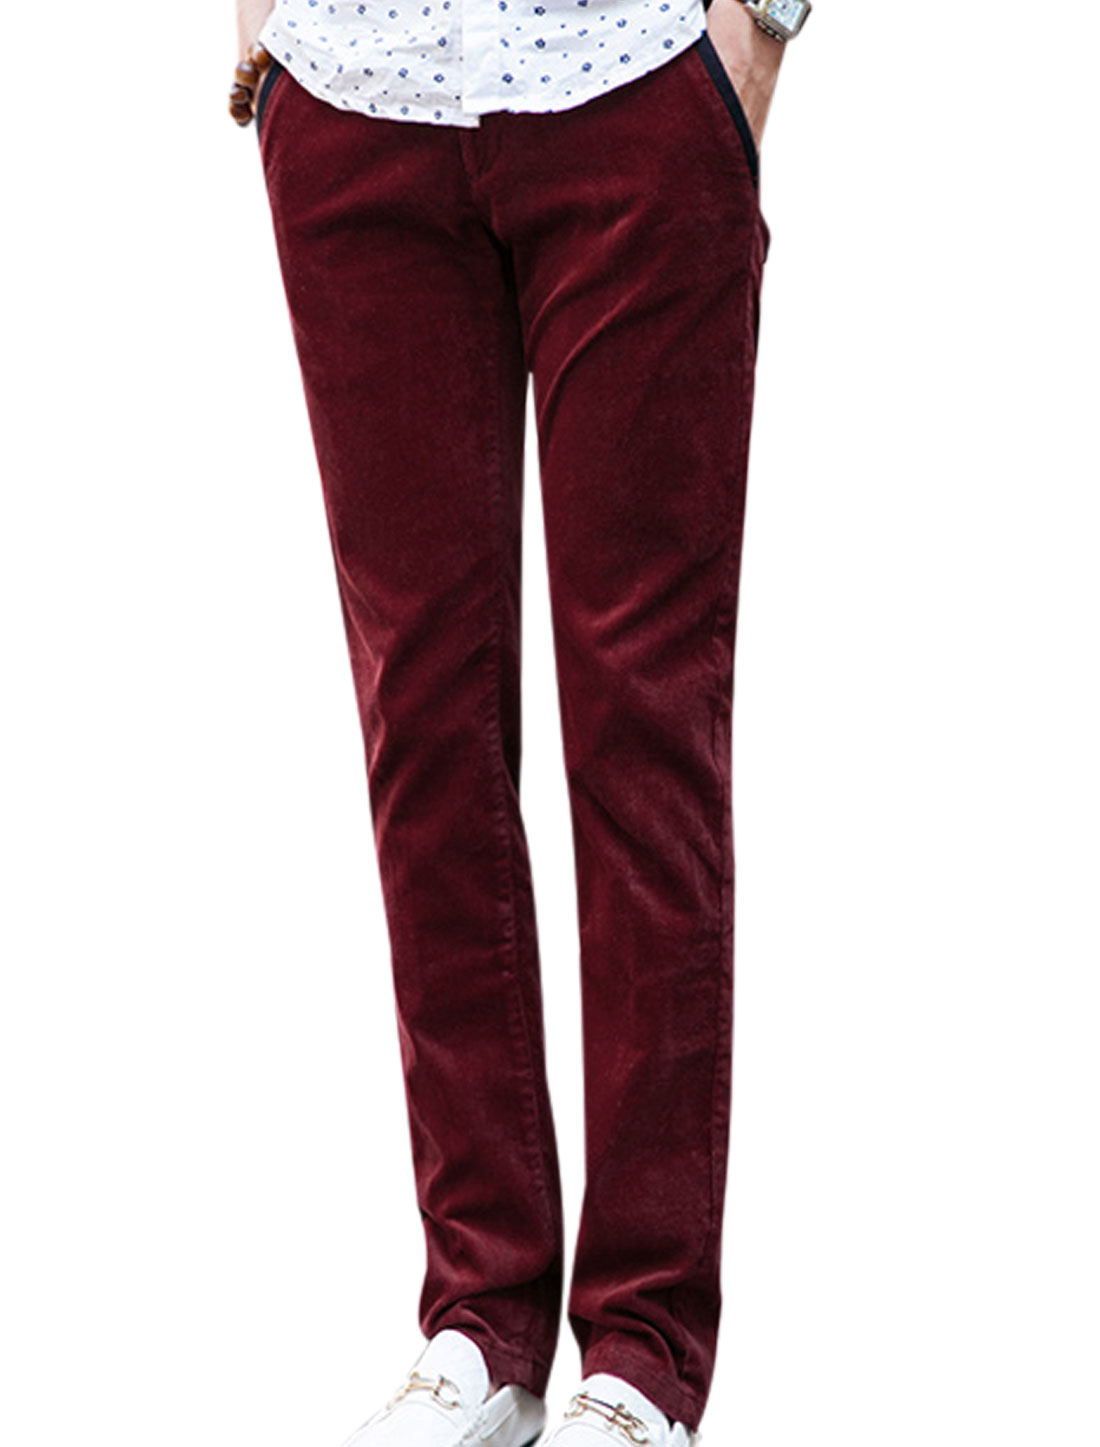 Man Natural Waist Design Button Closed Burgundy Corduroy Pants W32